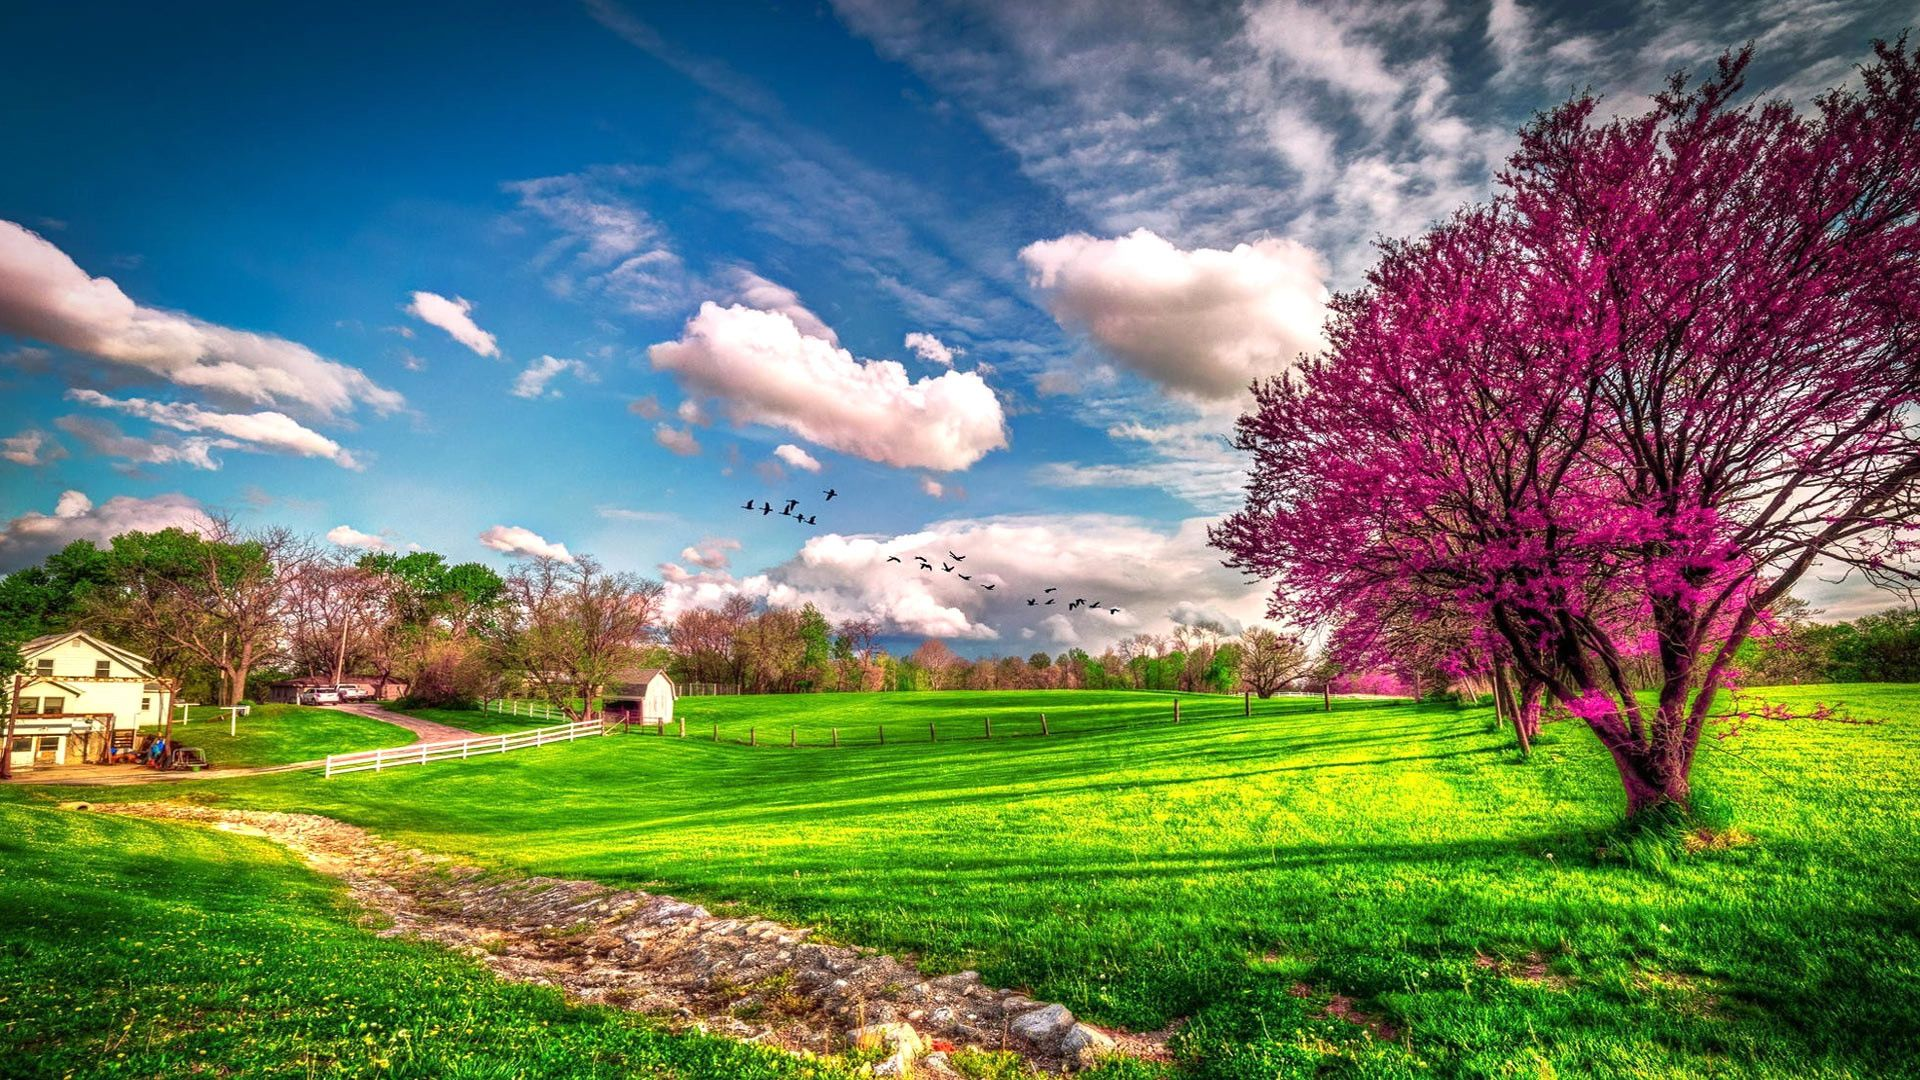 Wallpaper Download 1920x1080 Landscape Beautiful Spring Nature Wallpapers Seasons HD 1080p 2160p UHD 4K